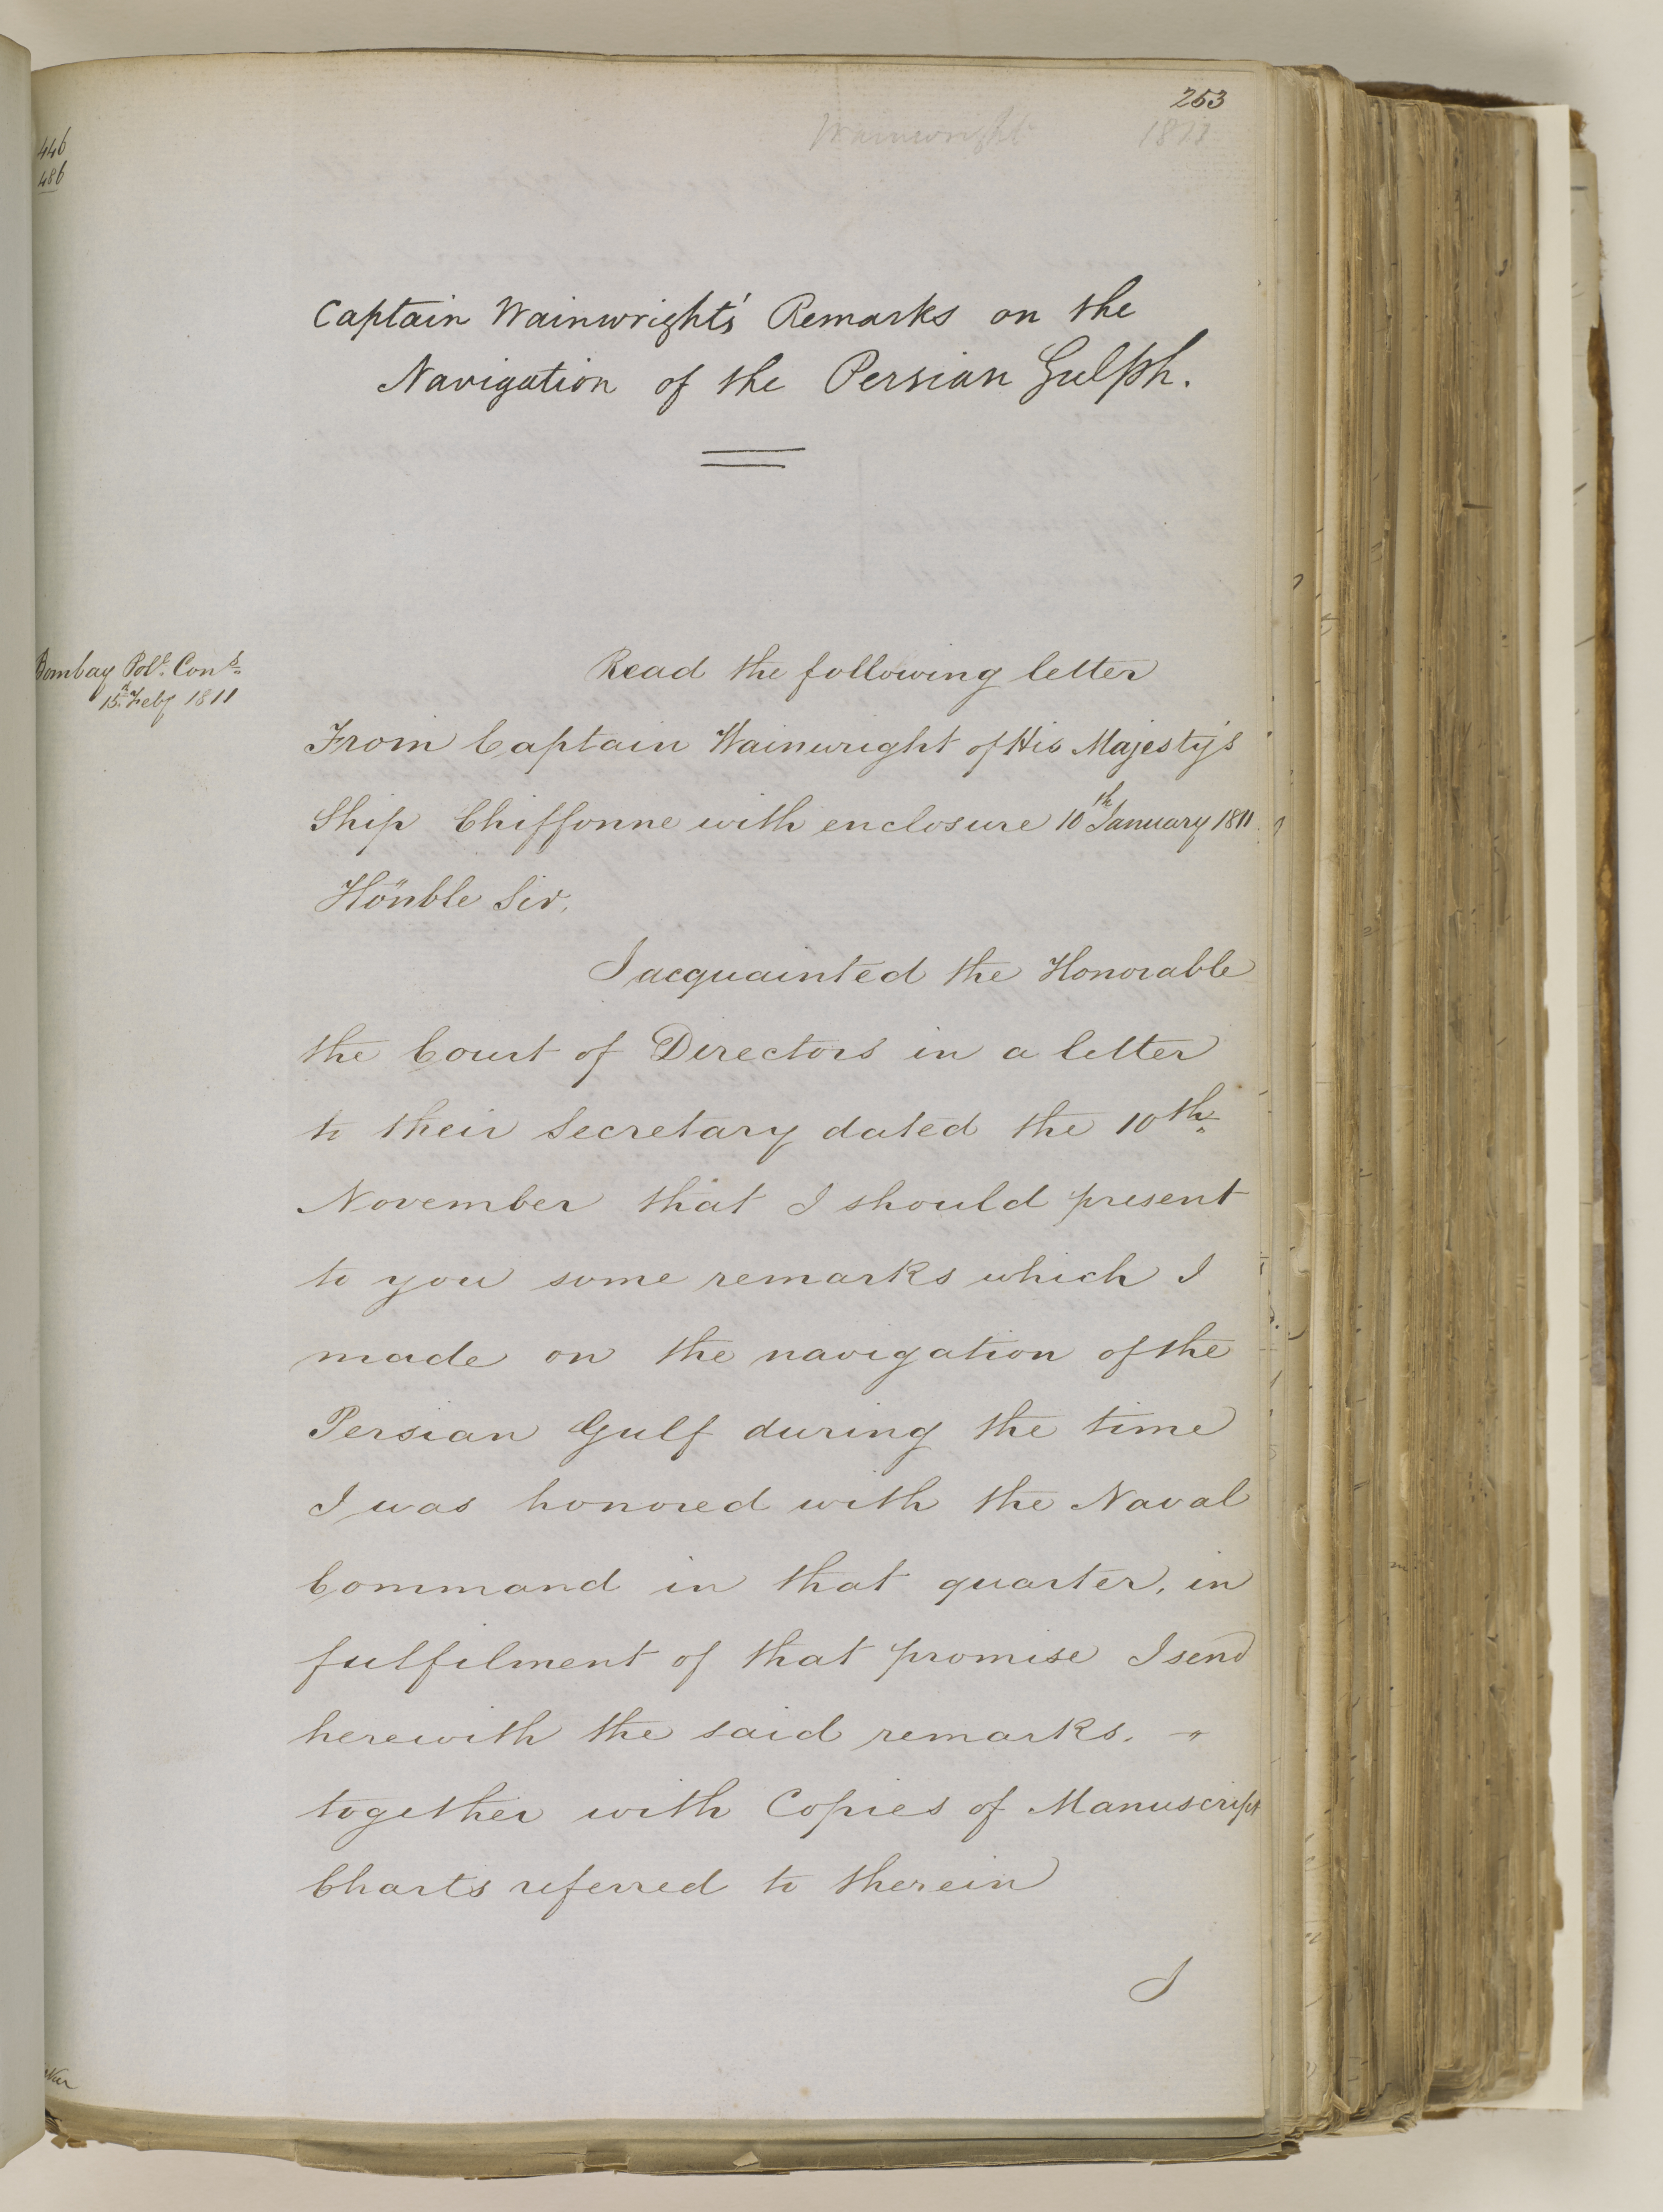 Marine Miscellaneous Records: 'Captain Wainwright's Remarks on the Navigation of the Persian Gulph' (1811) (IOR/L/MAR/C570)